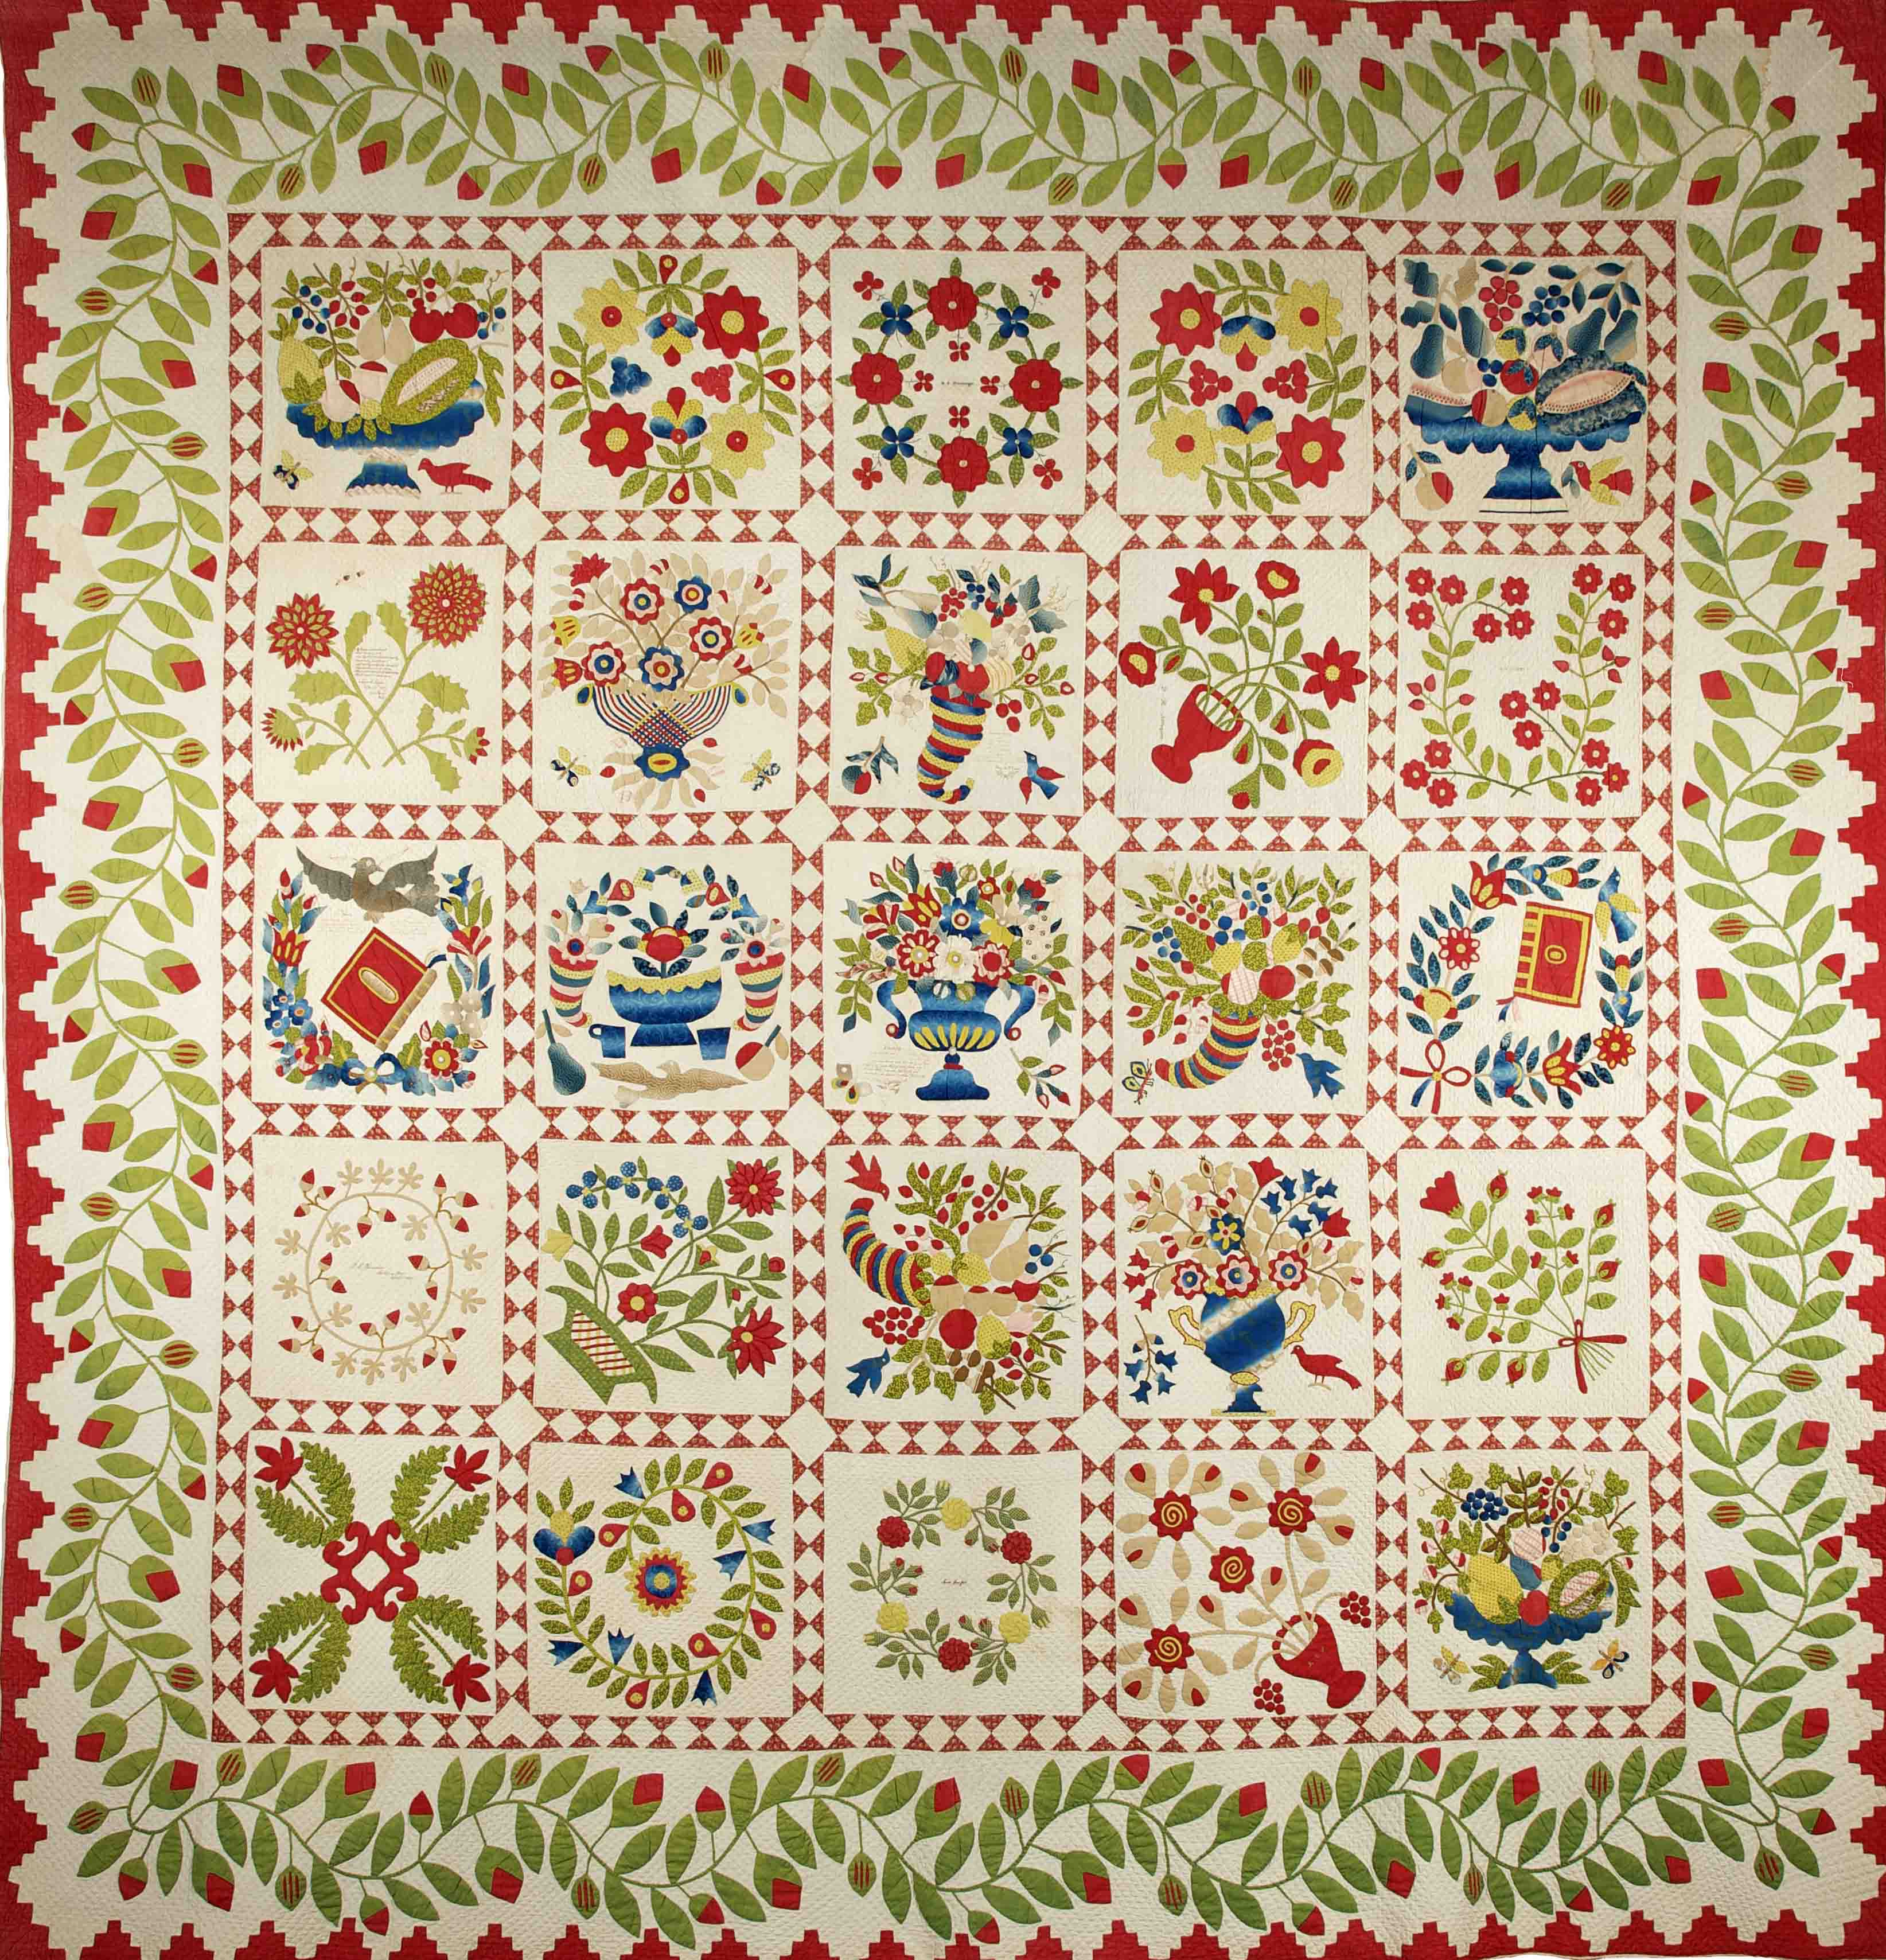 Baltimore Album Quilt, 1847 Flamboyant gifts made for display rather than domestic use. Copyright: American Museum in Britain